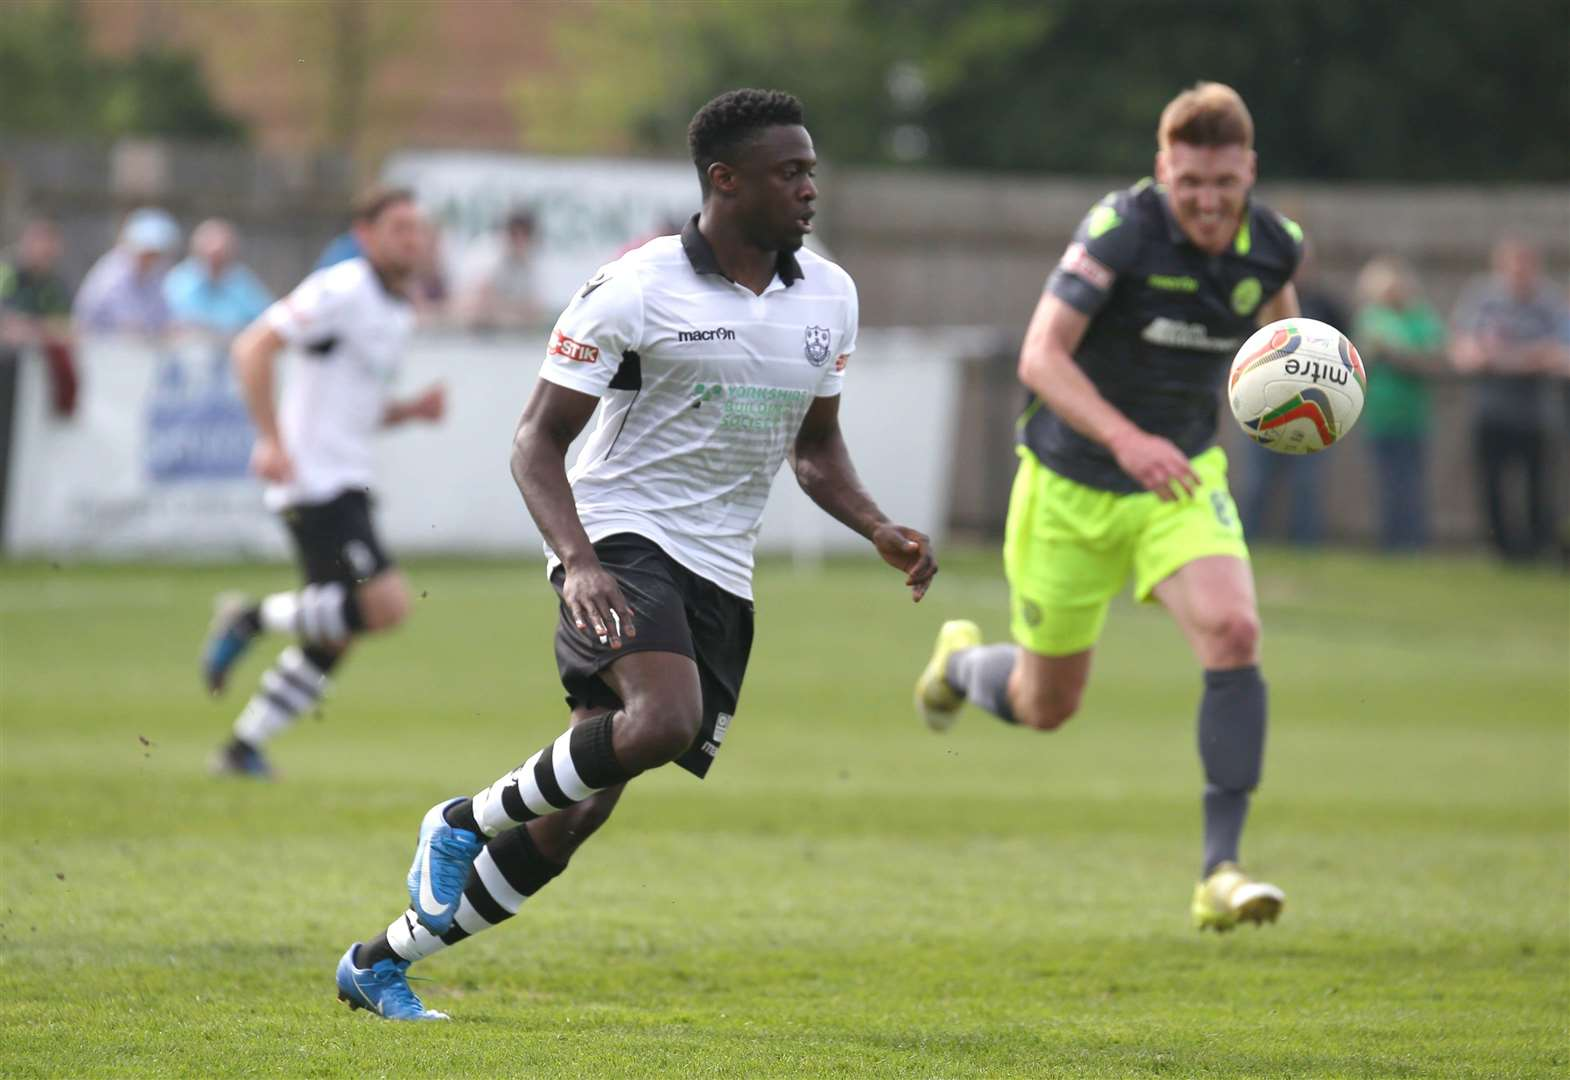 Cambridge City suffer defeat against Aylesbury